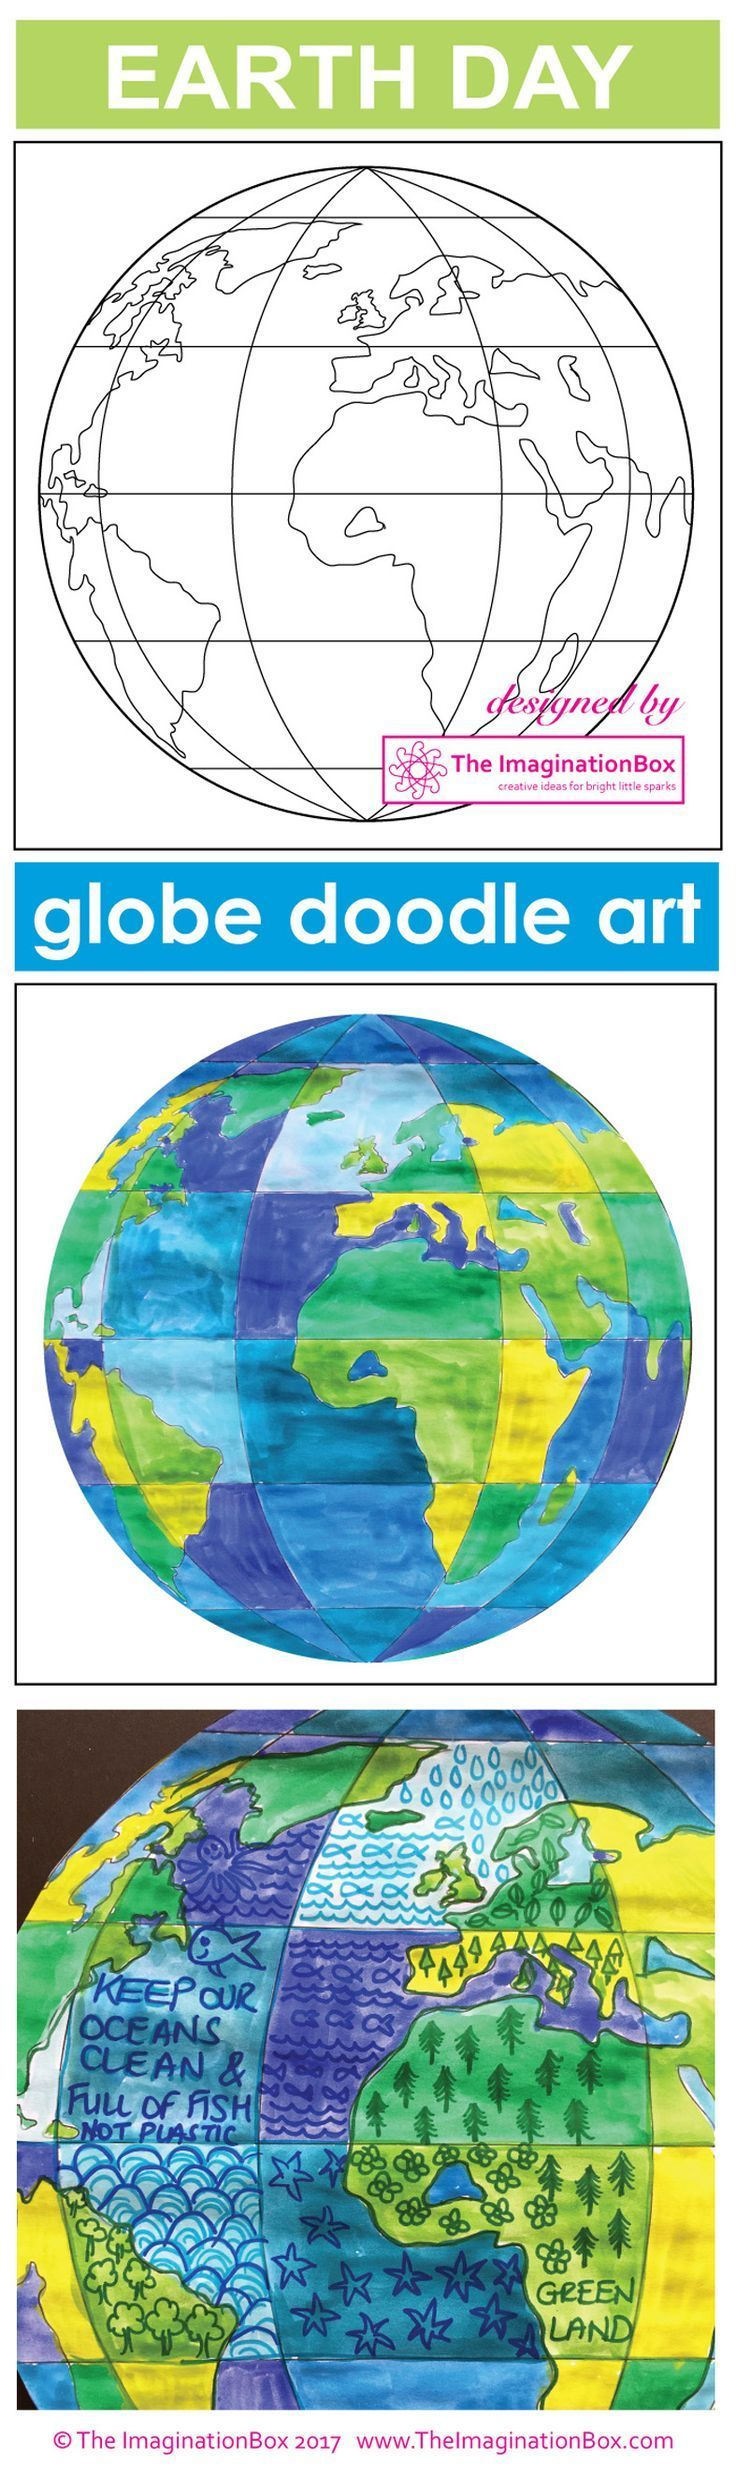 Celebrate Earth Day and bring creativity and color to your classroom with this globe doodle art and poster resource. The globe art activity has been designed in sections so that students can experiment with using shades of greens for landmass and shades of blue for the ocean and then doodle over the finished artwork with words and symbols to create imaginative, original and modern artworks.